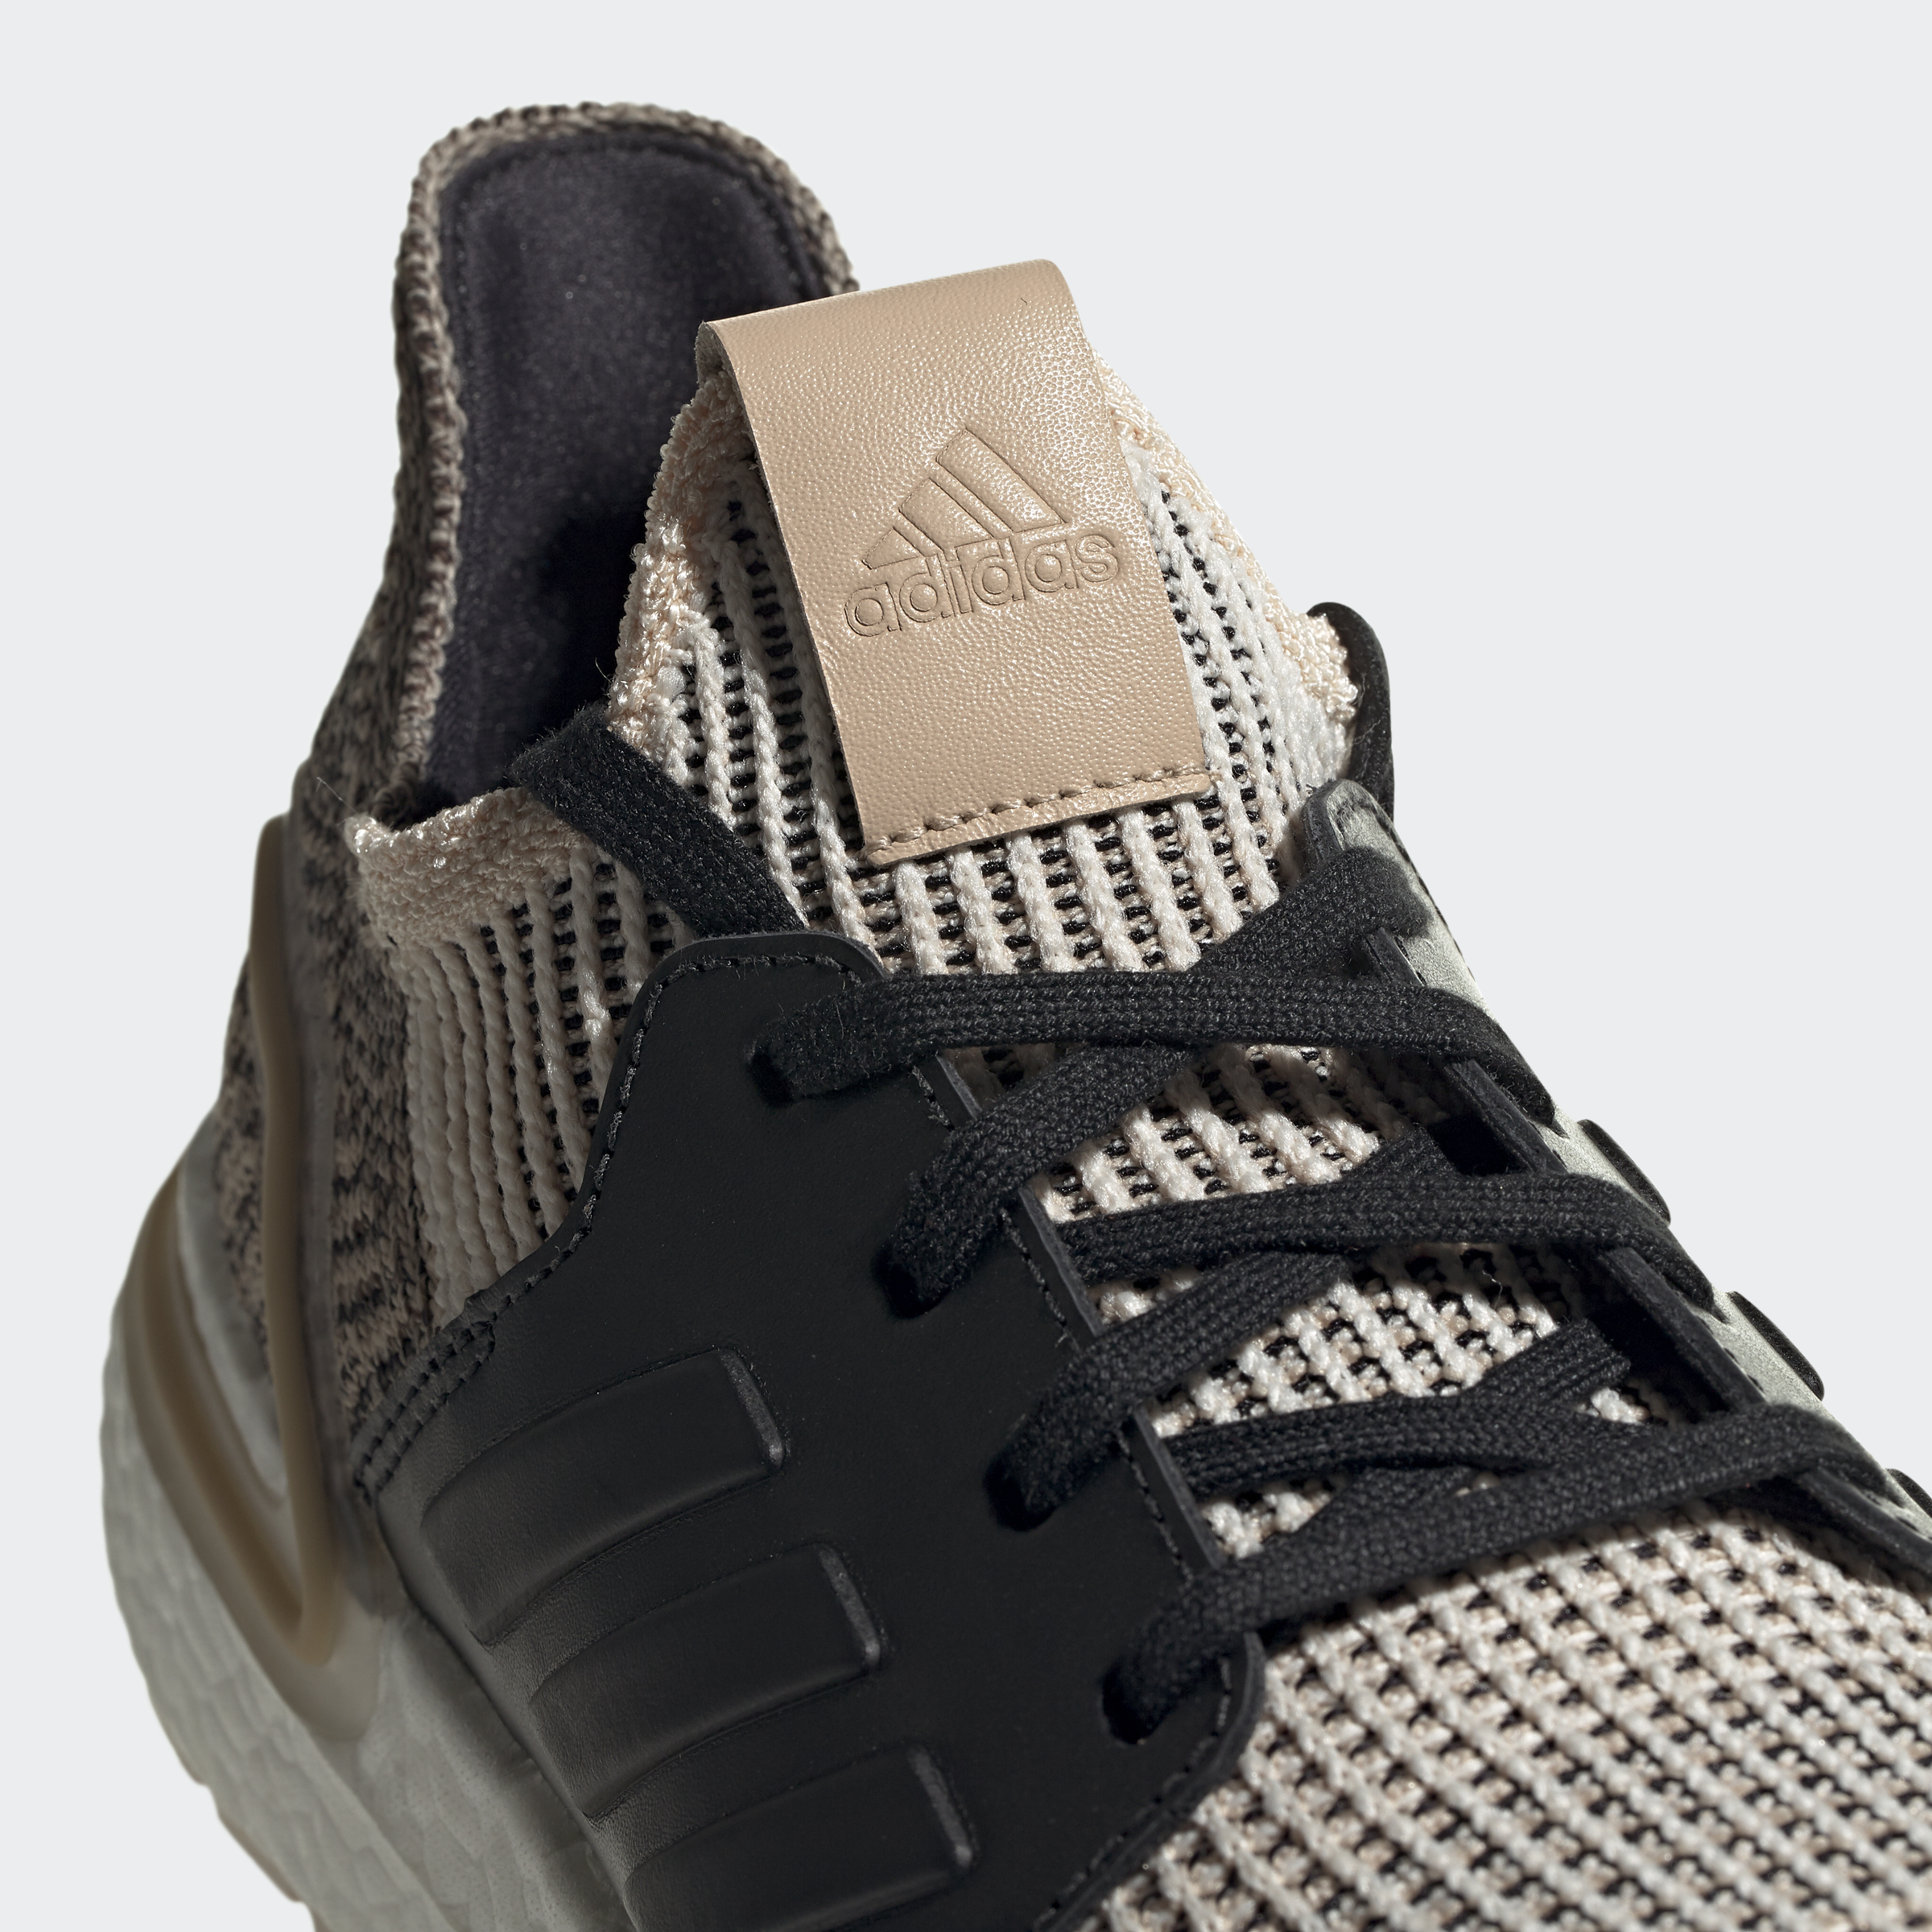 adidas-Ultraboost-19-Shoes-Athletic-amp-Sneakers thumbnail 72